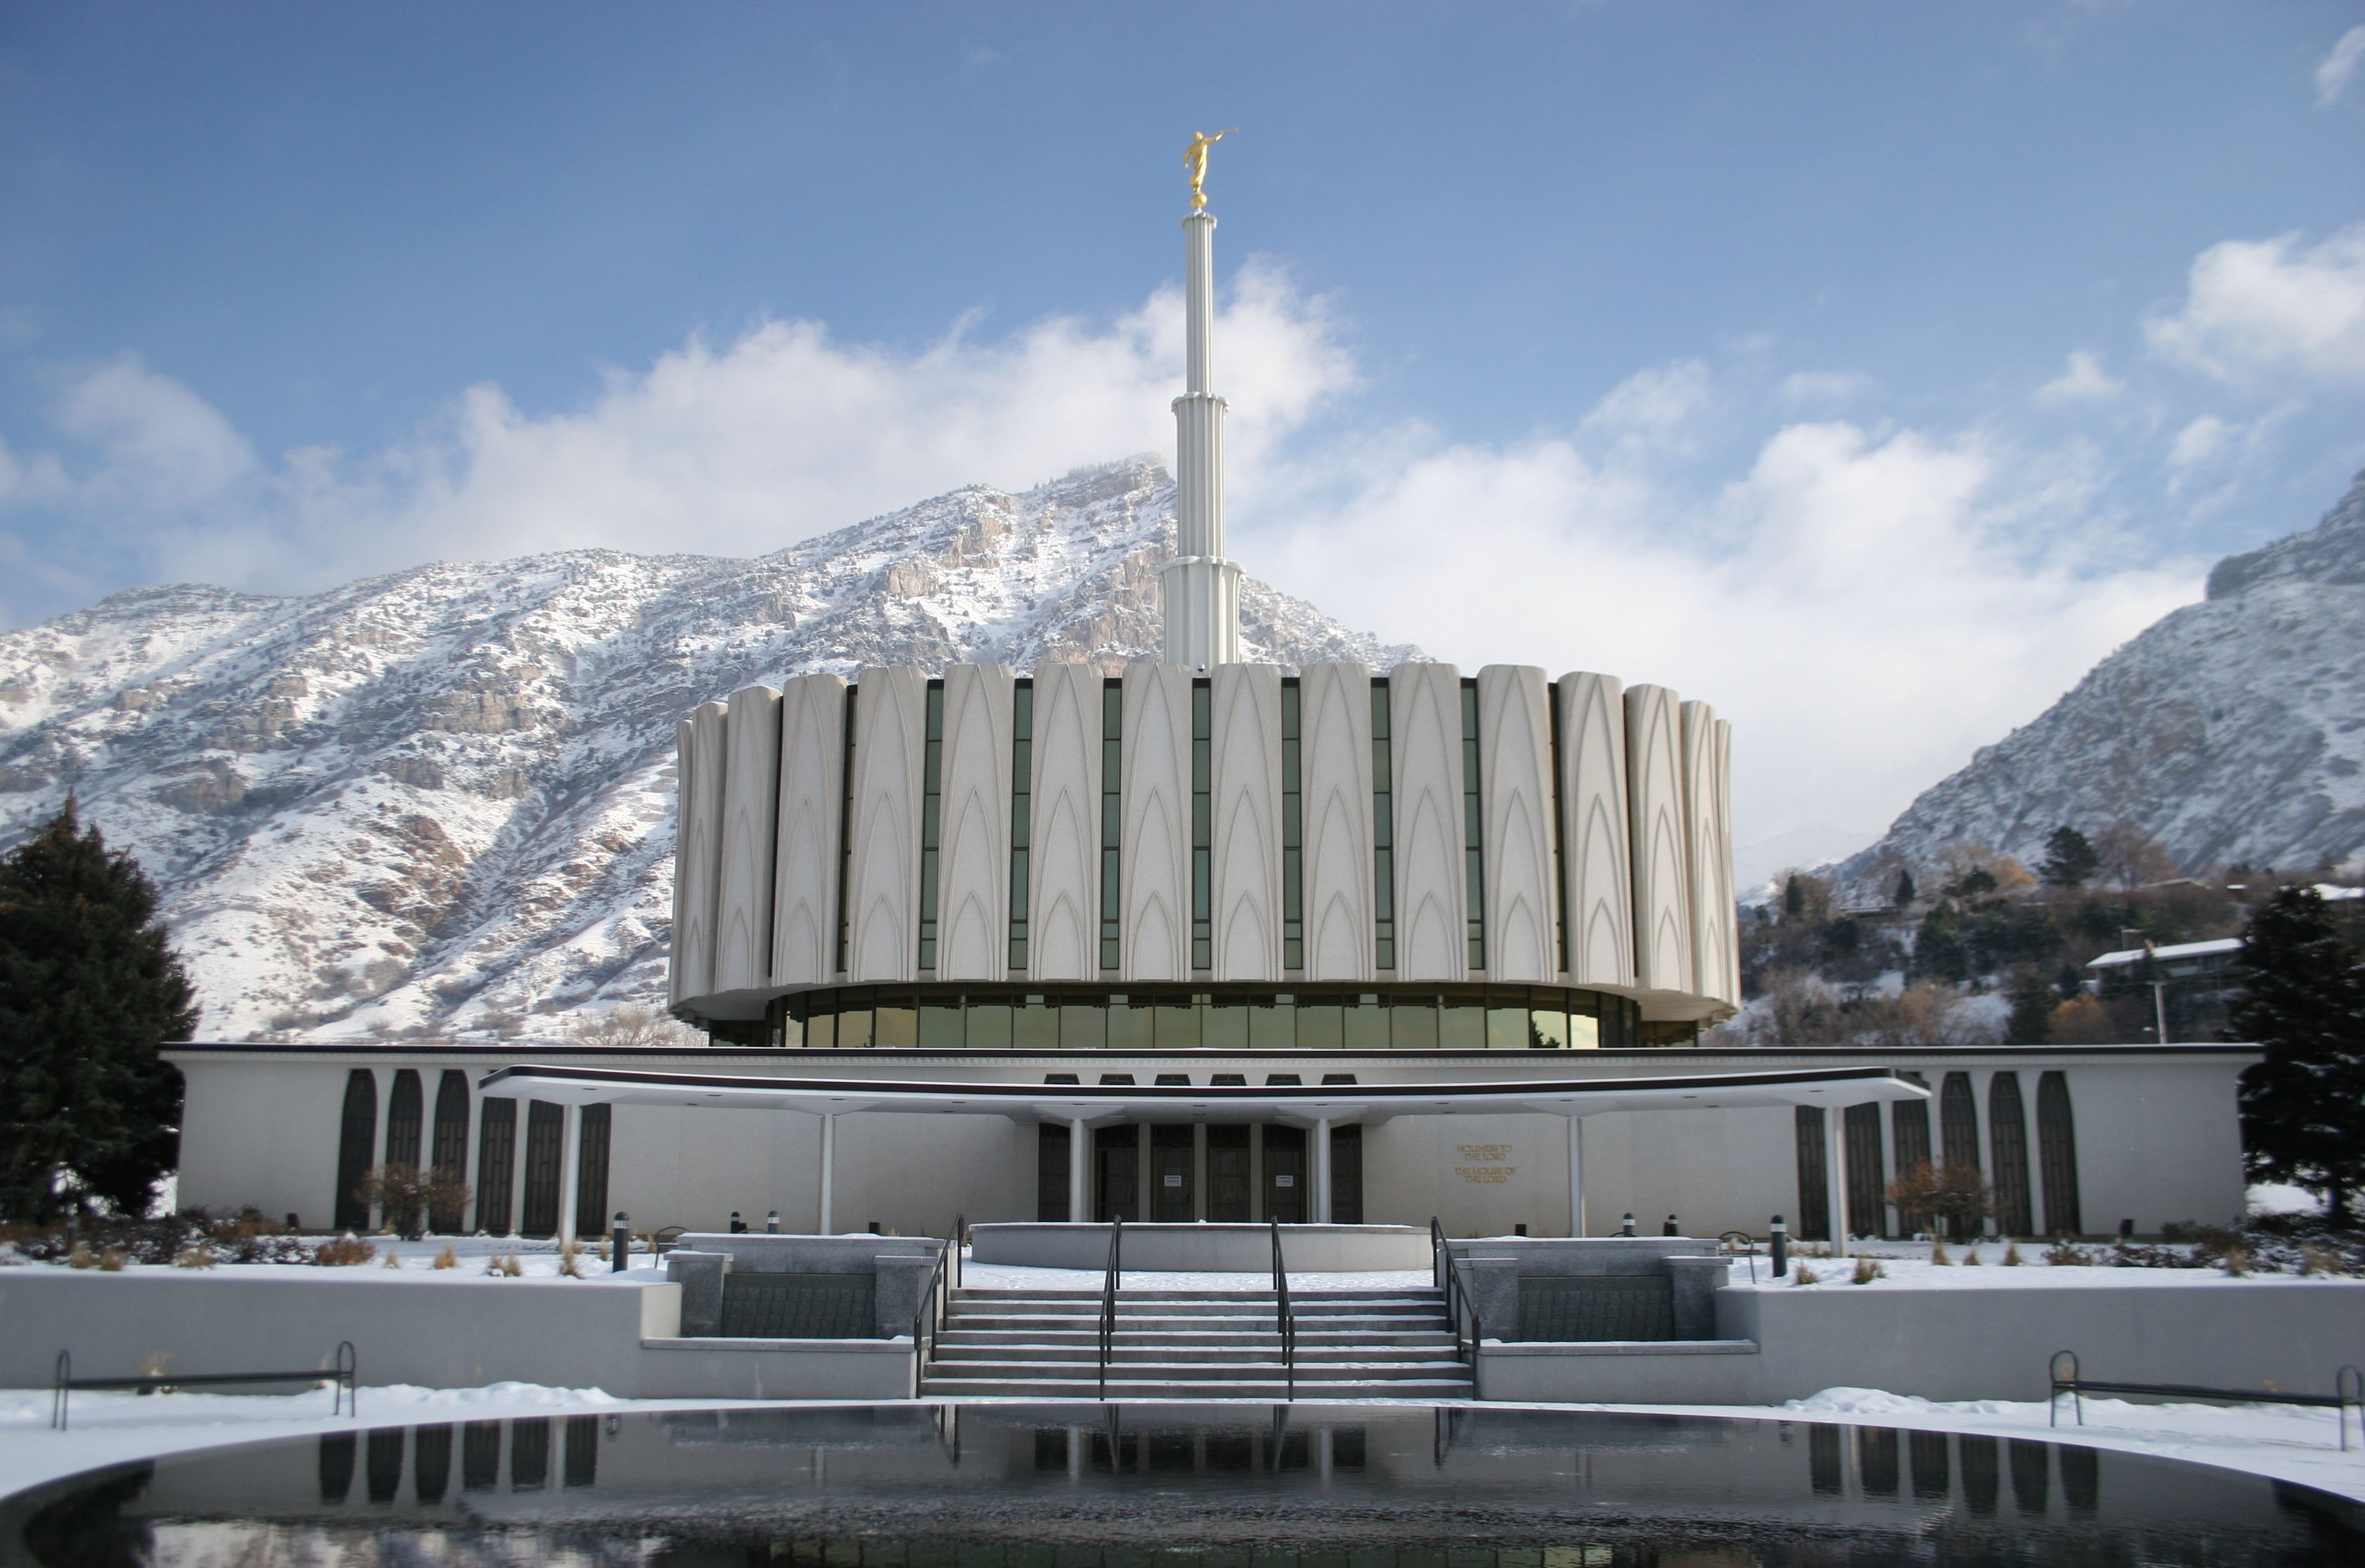 https://upload.wikimedia.org/wikipedia/commons/a/a0/Provo_Utah_Temple_4.jpg